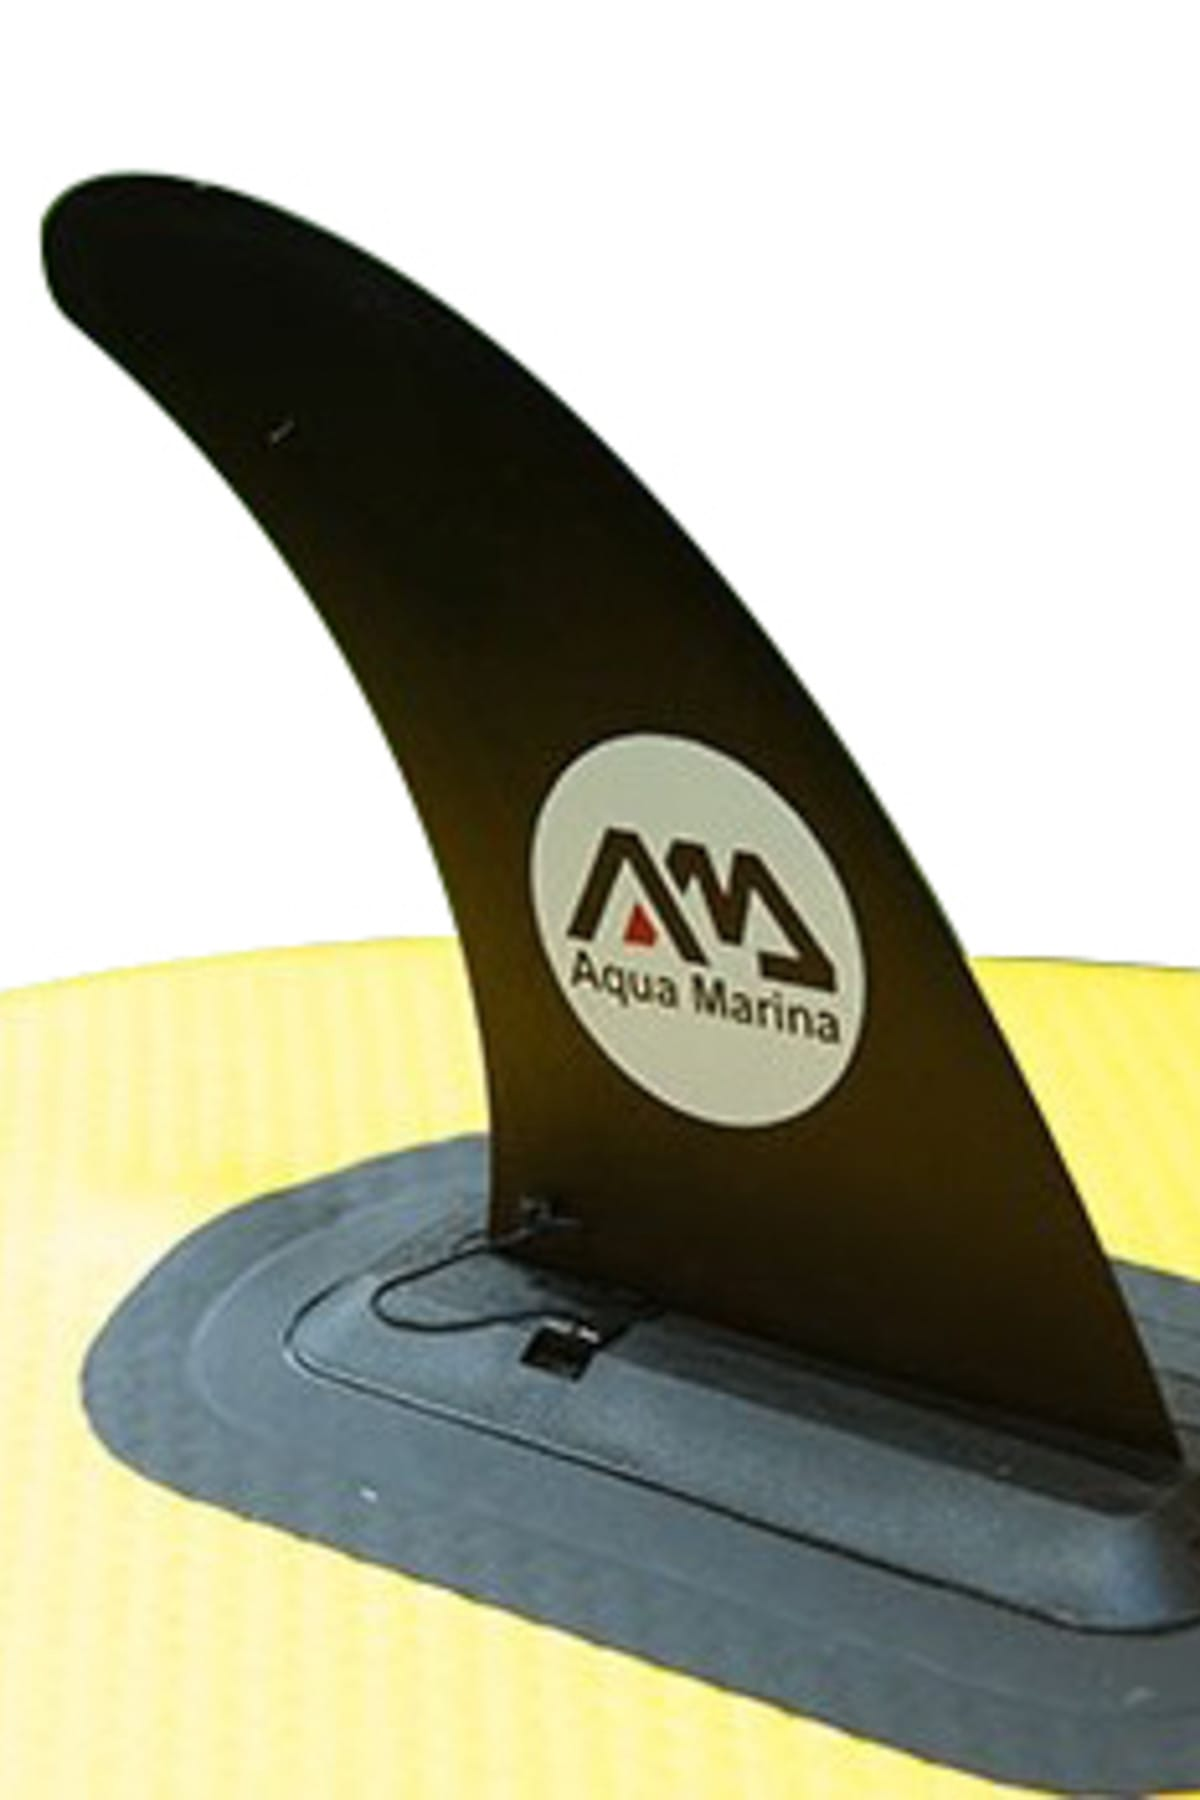 Aqua Marina Ss15 Slide ın Center Fin With Am Logo